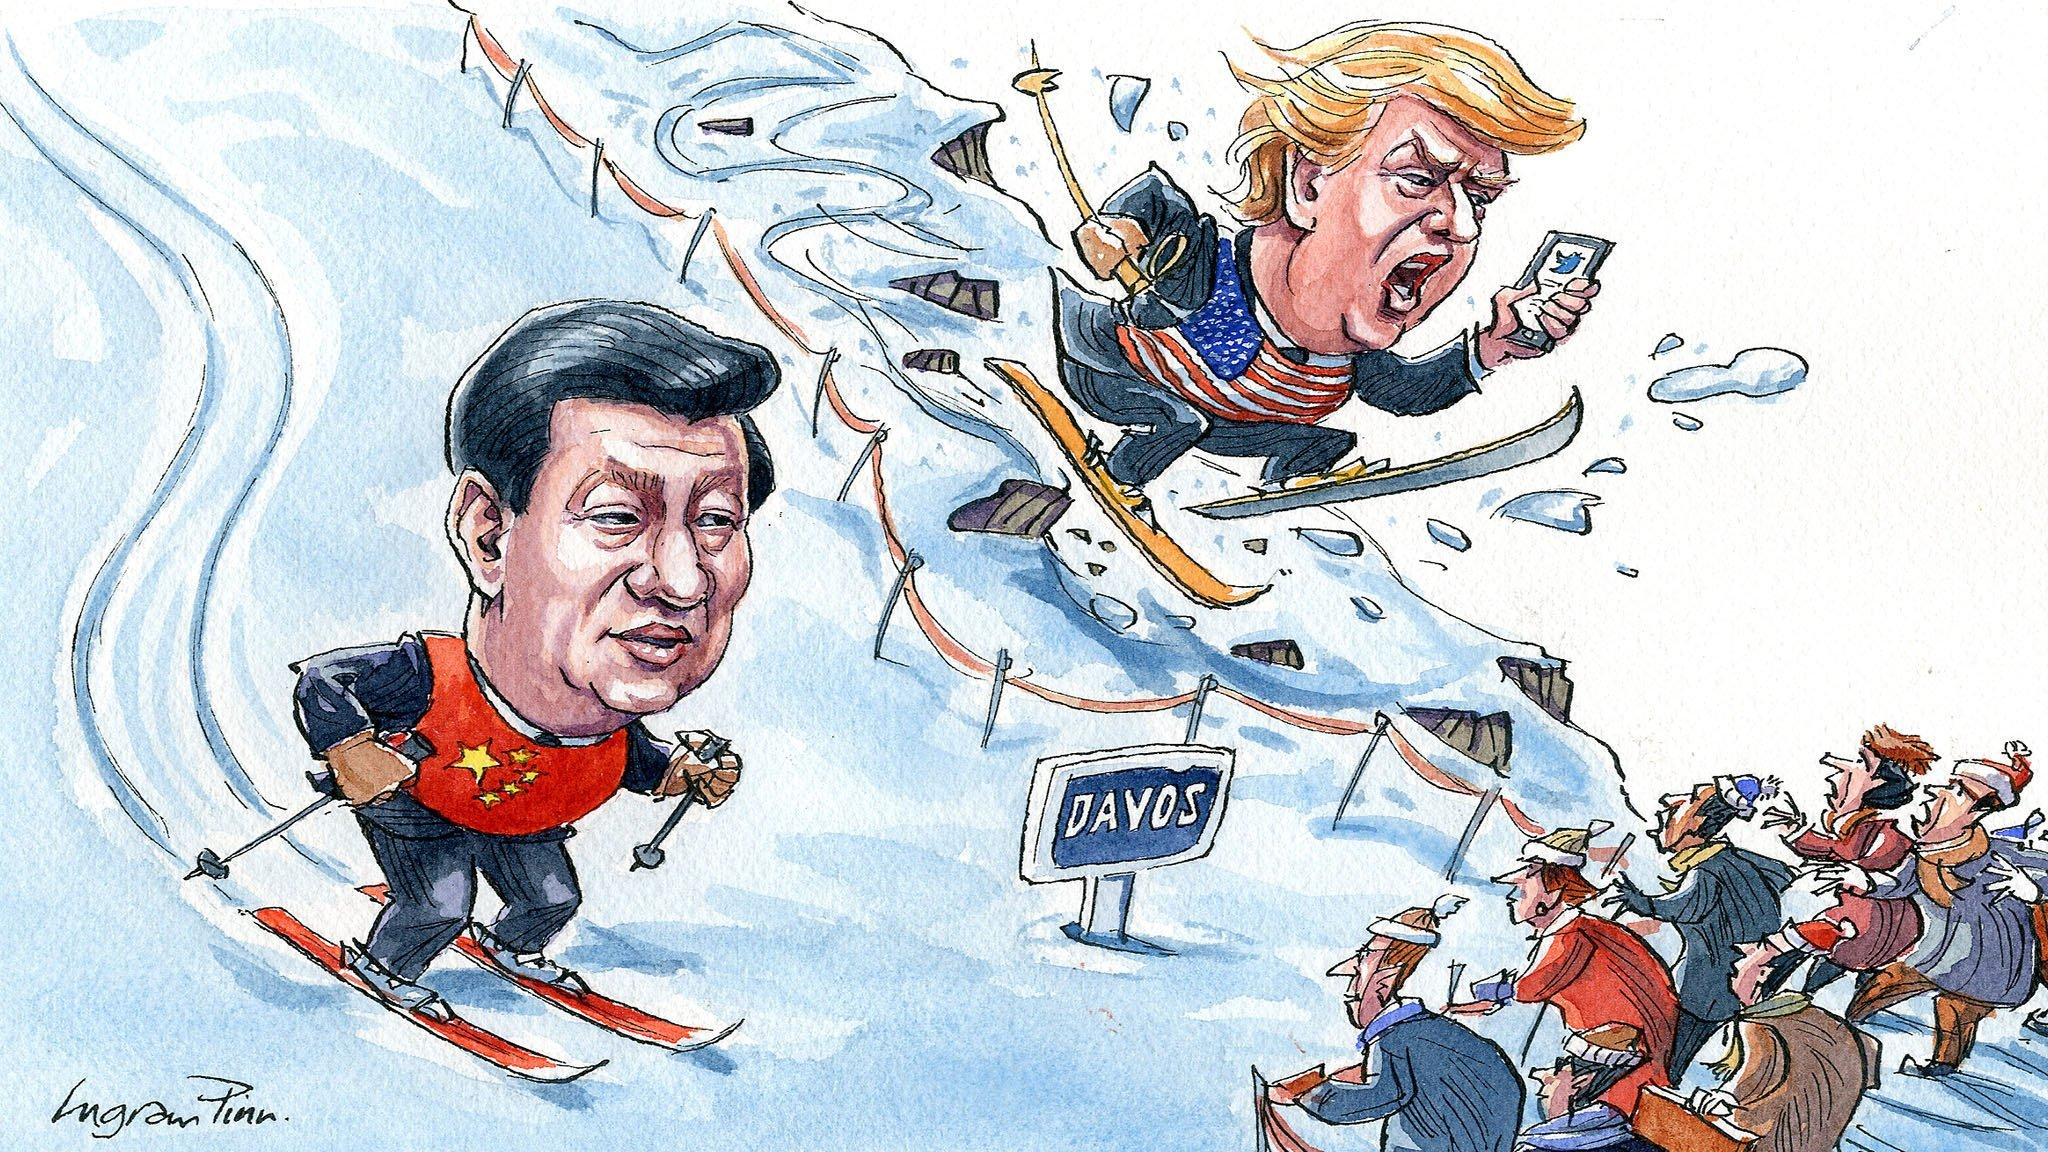 Xi Jinping, Davos and the world in 2017